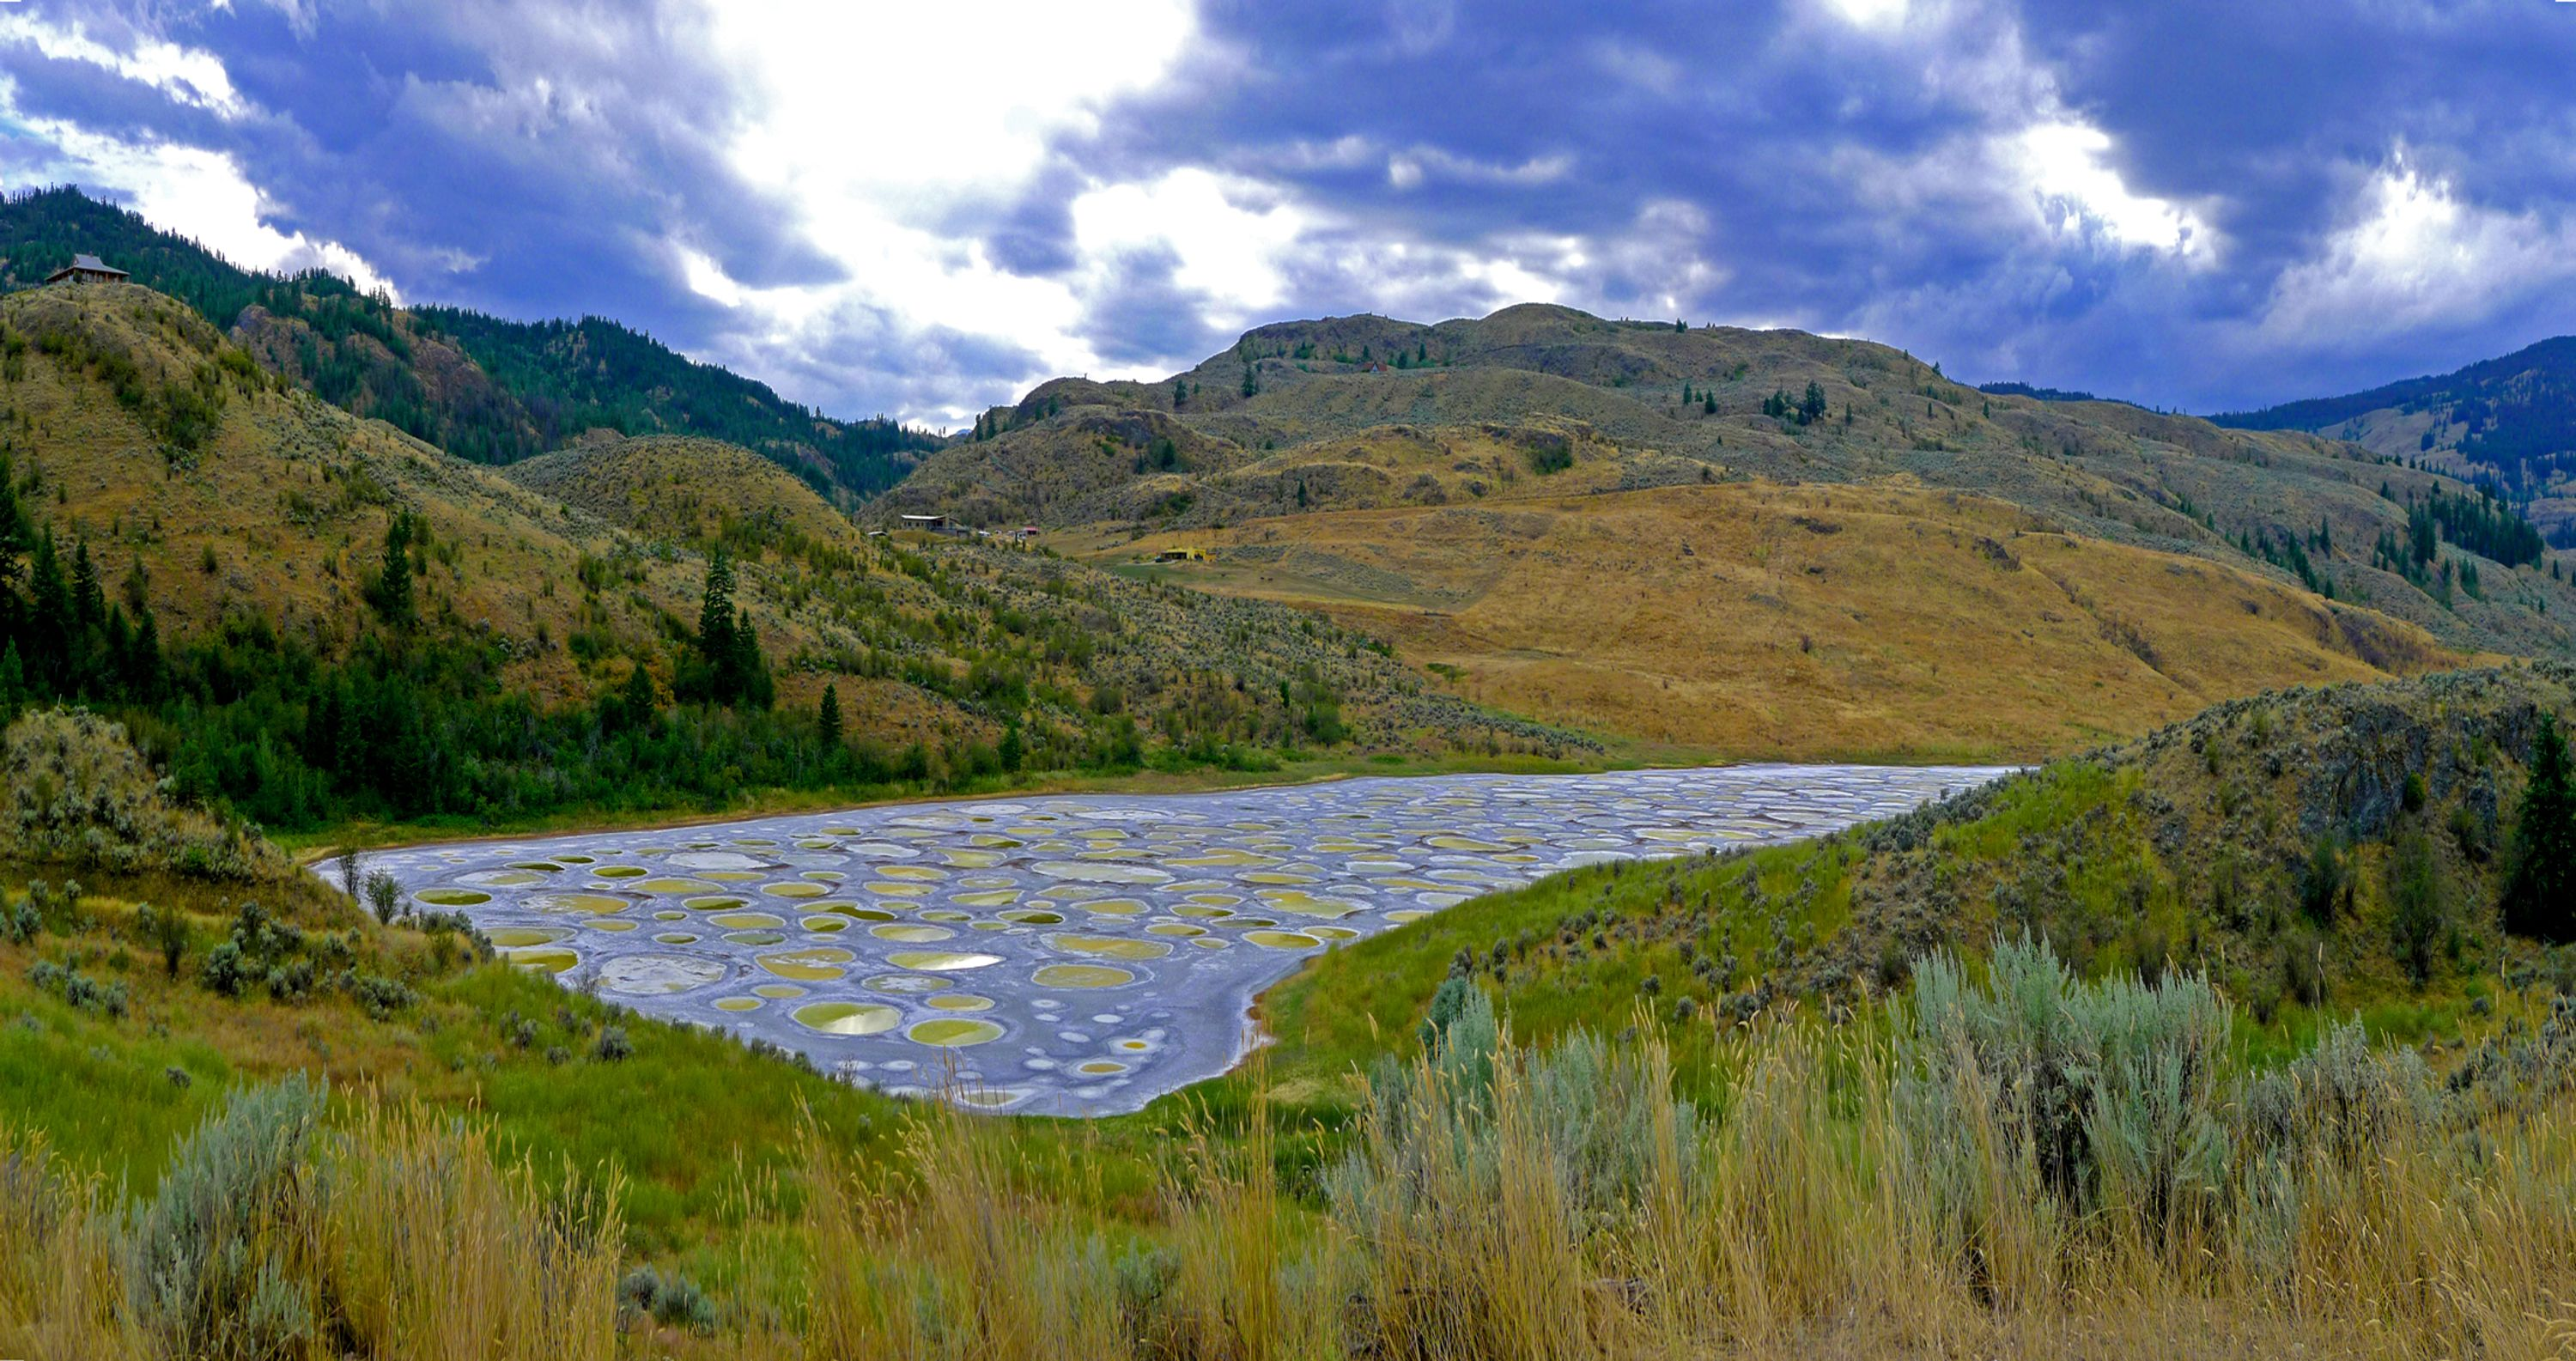 View of spotted lake, a sacred abandoned place in Canada, on a bright but cloudy day.